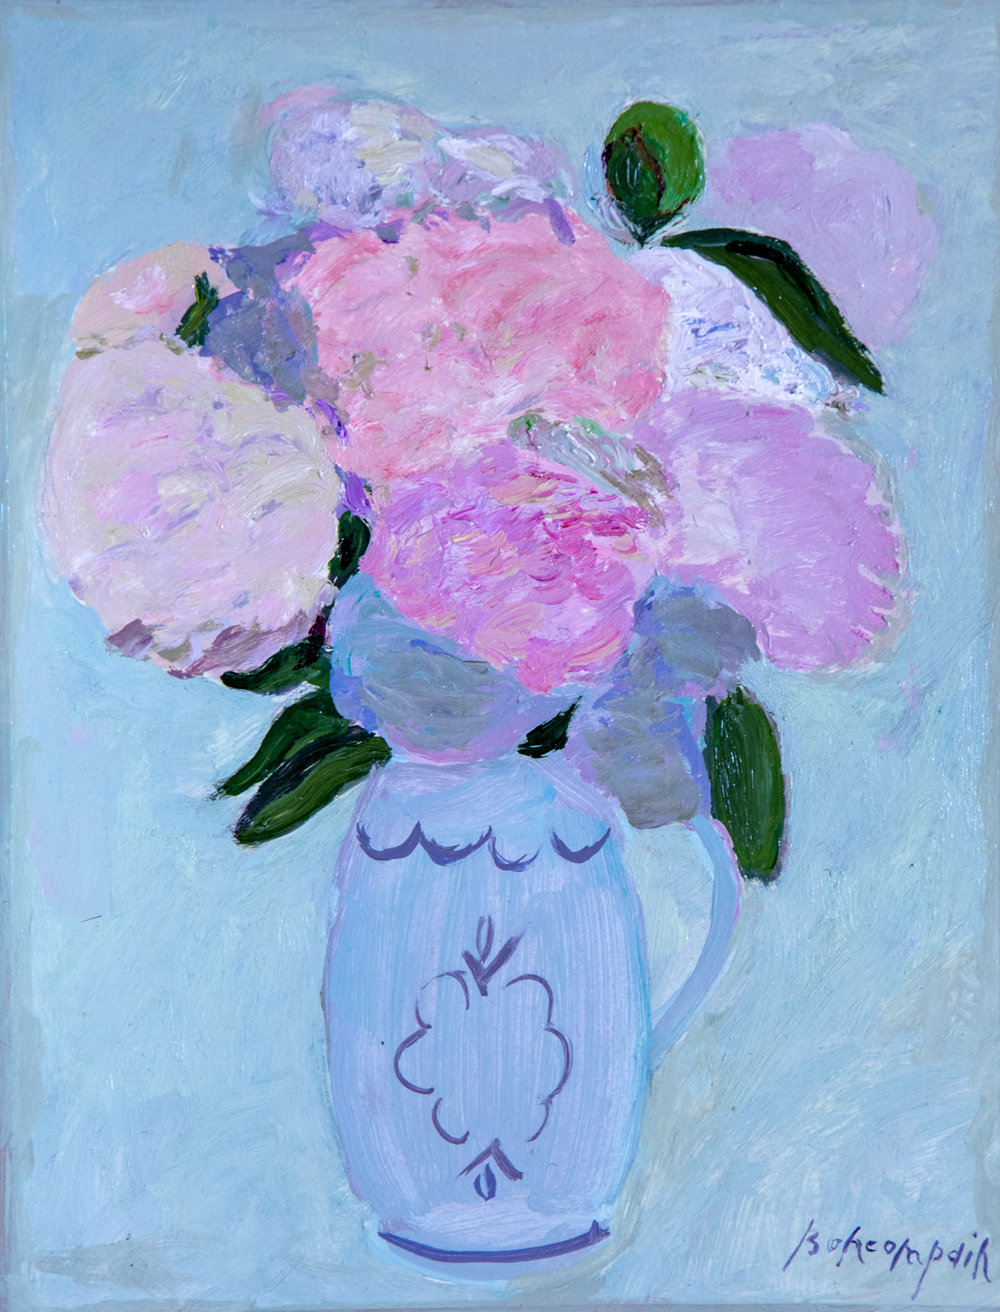 Pivoines rose, oil on canvas, 18 x 13 in.